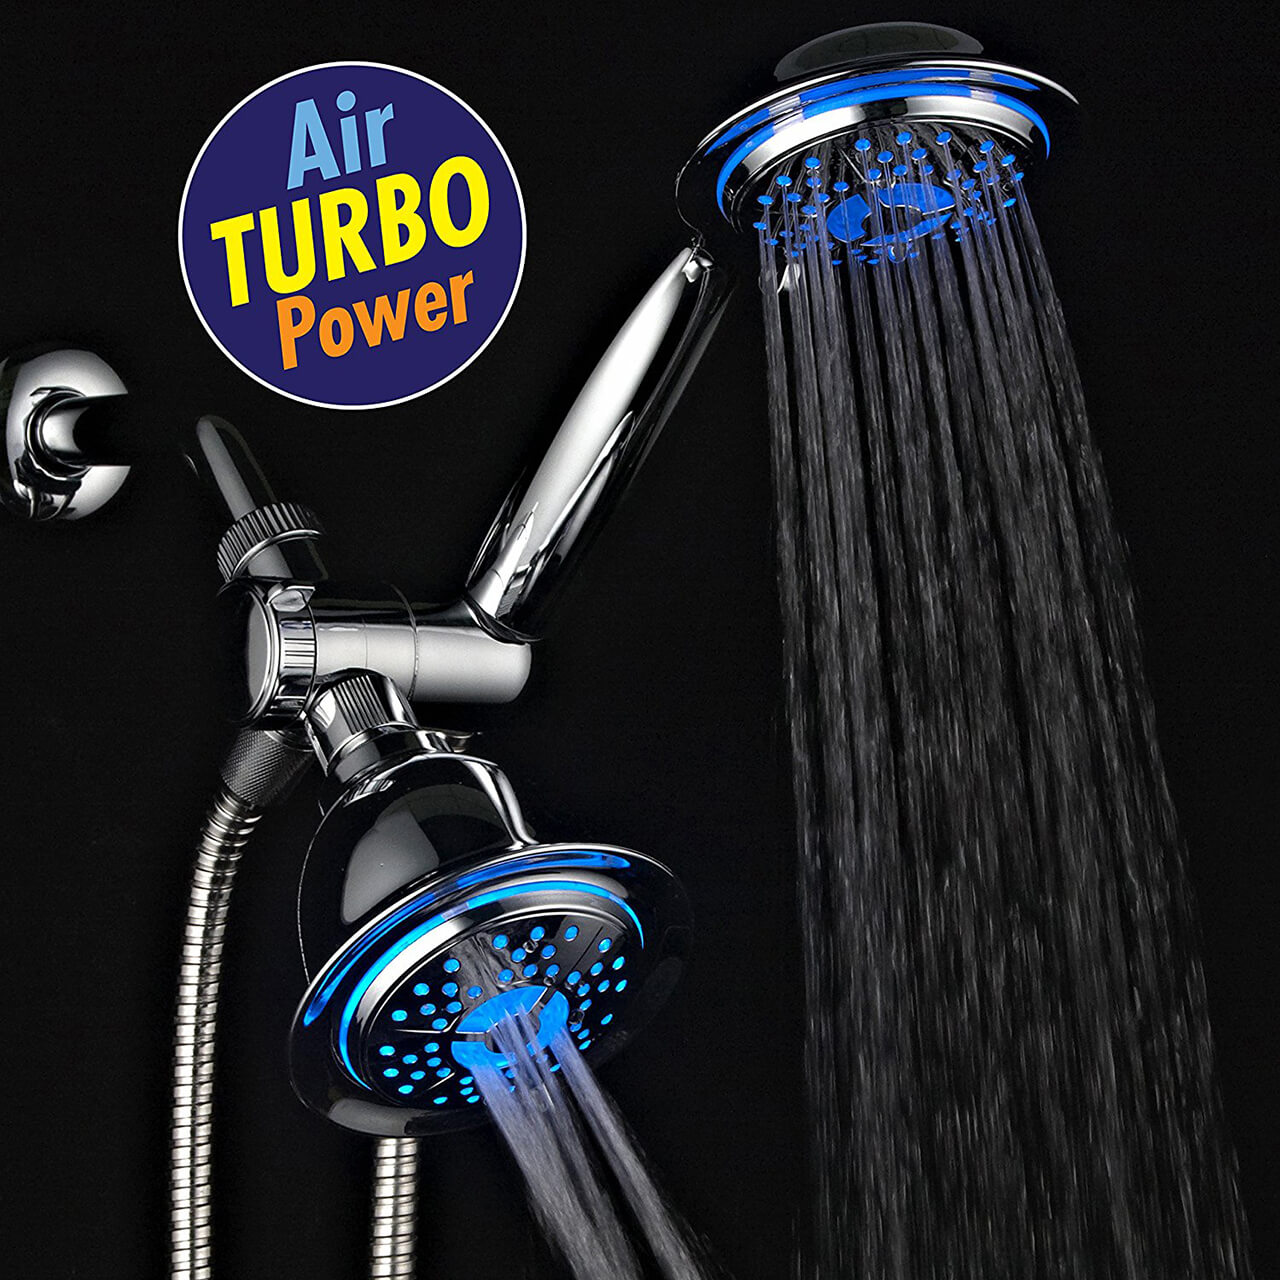 PowerSpa Shower with Air Turbo Technology